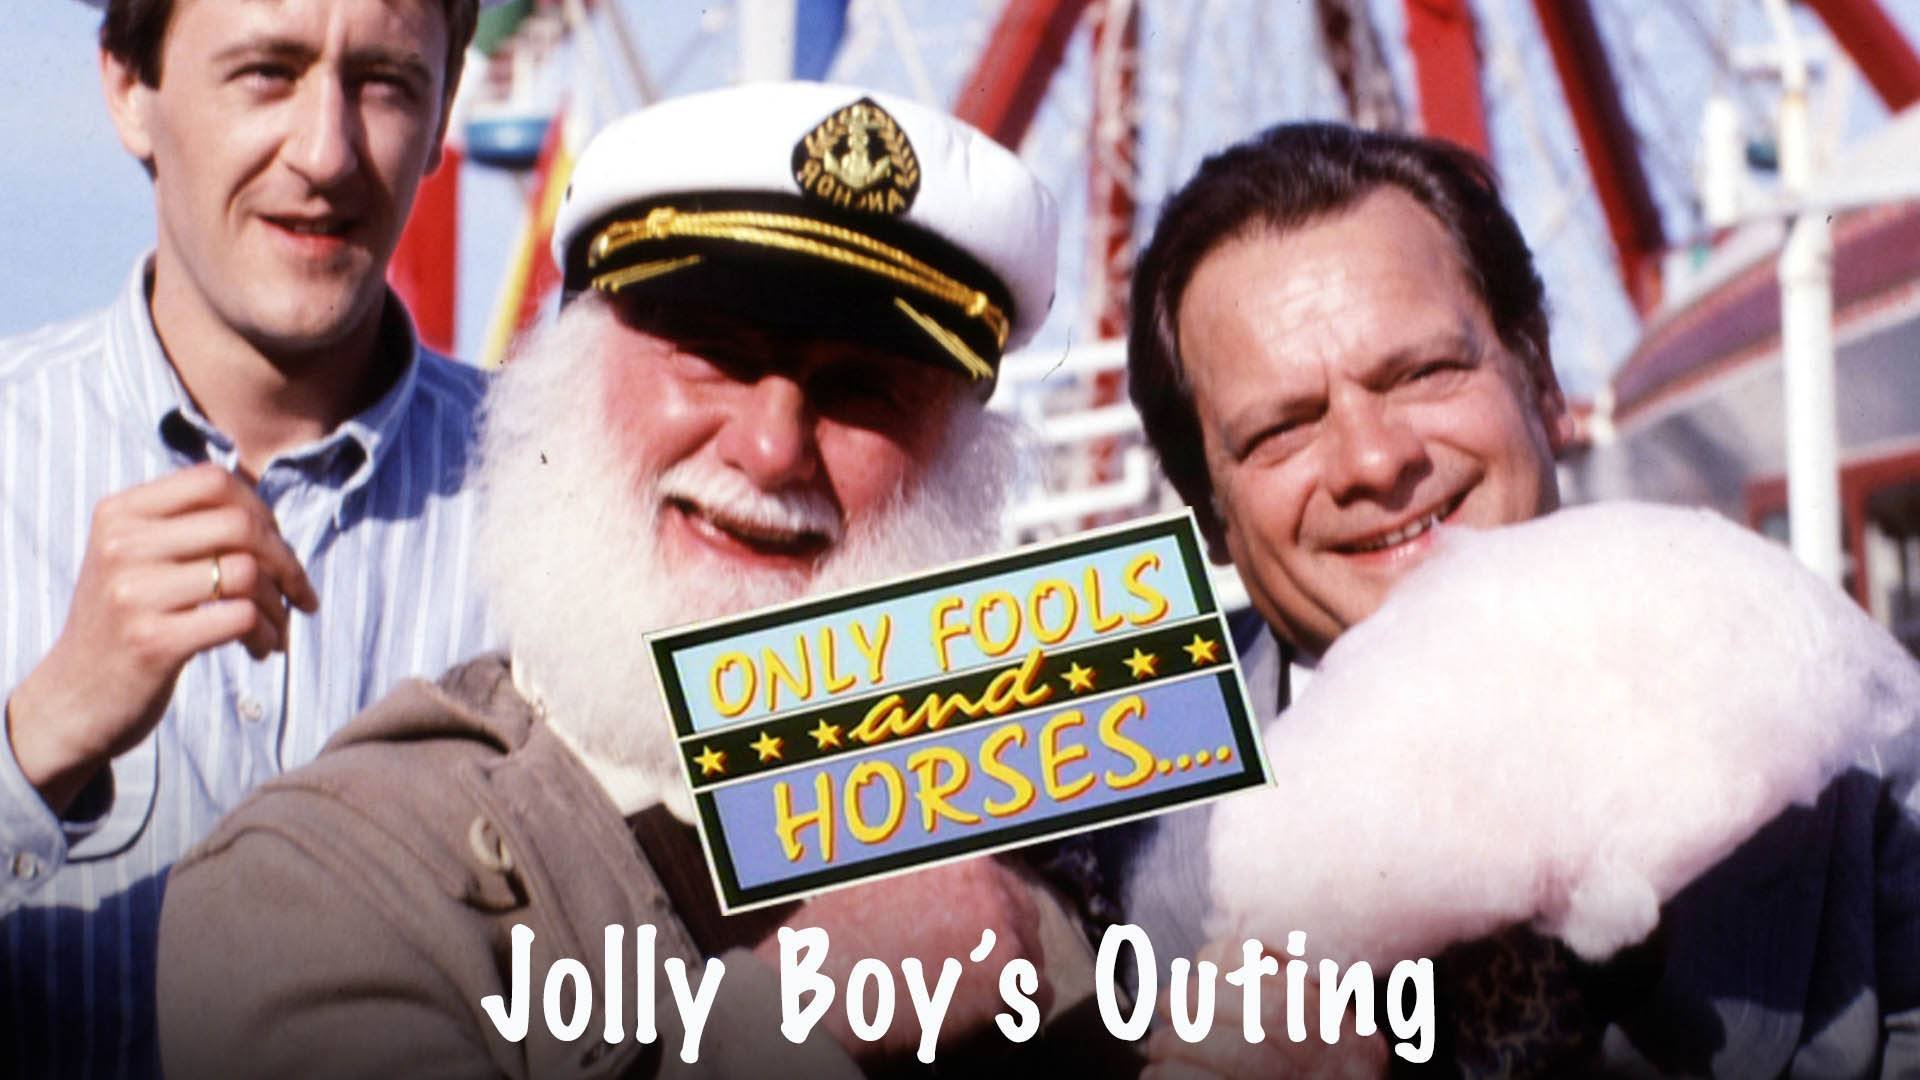 Only Fools and Horses Christmas Special 1989: Jolly Boy's Outing on BritBox UK